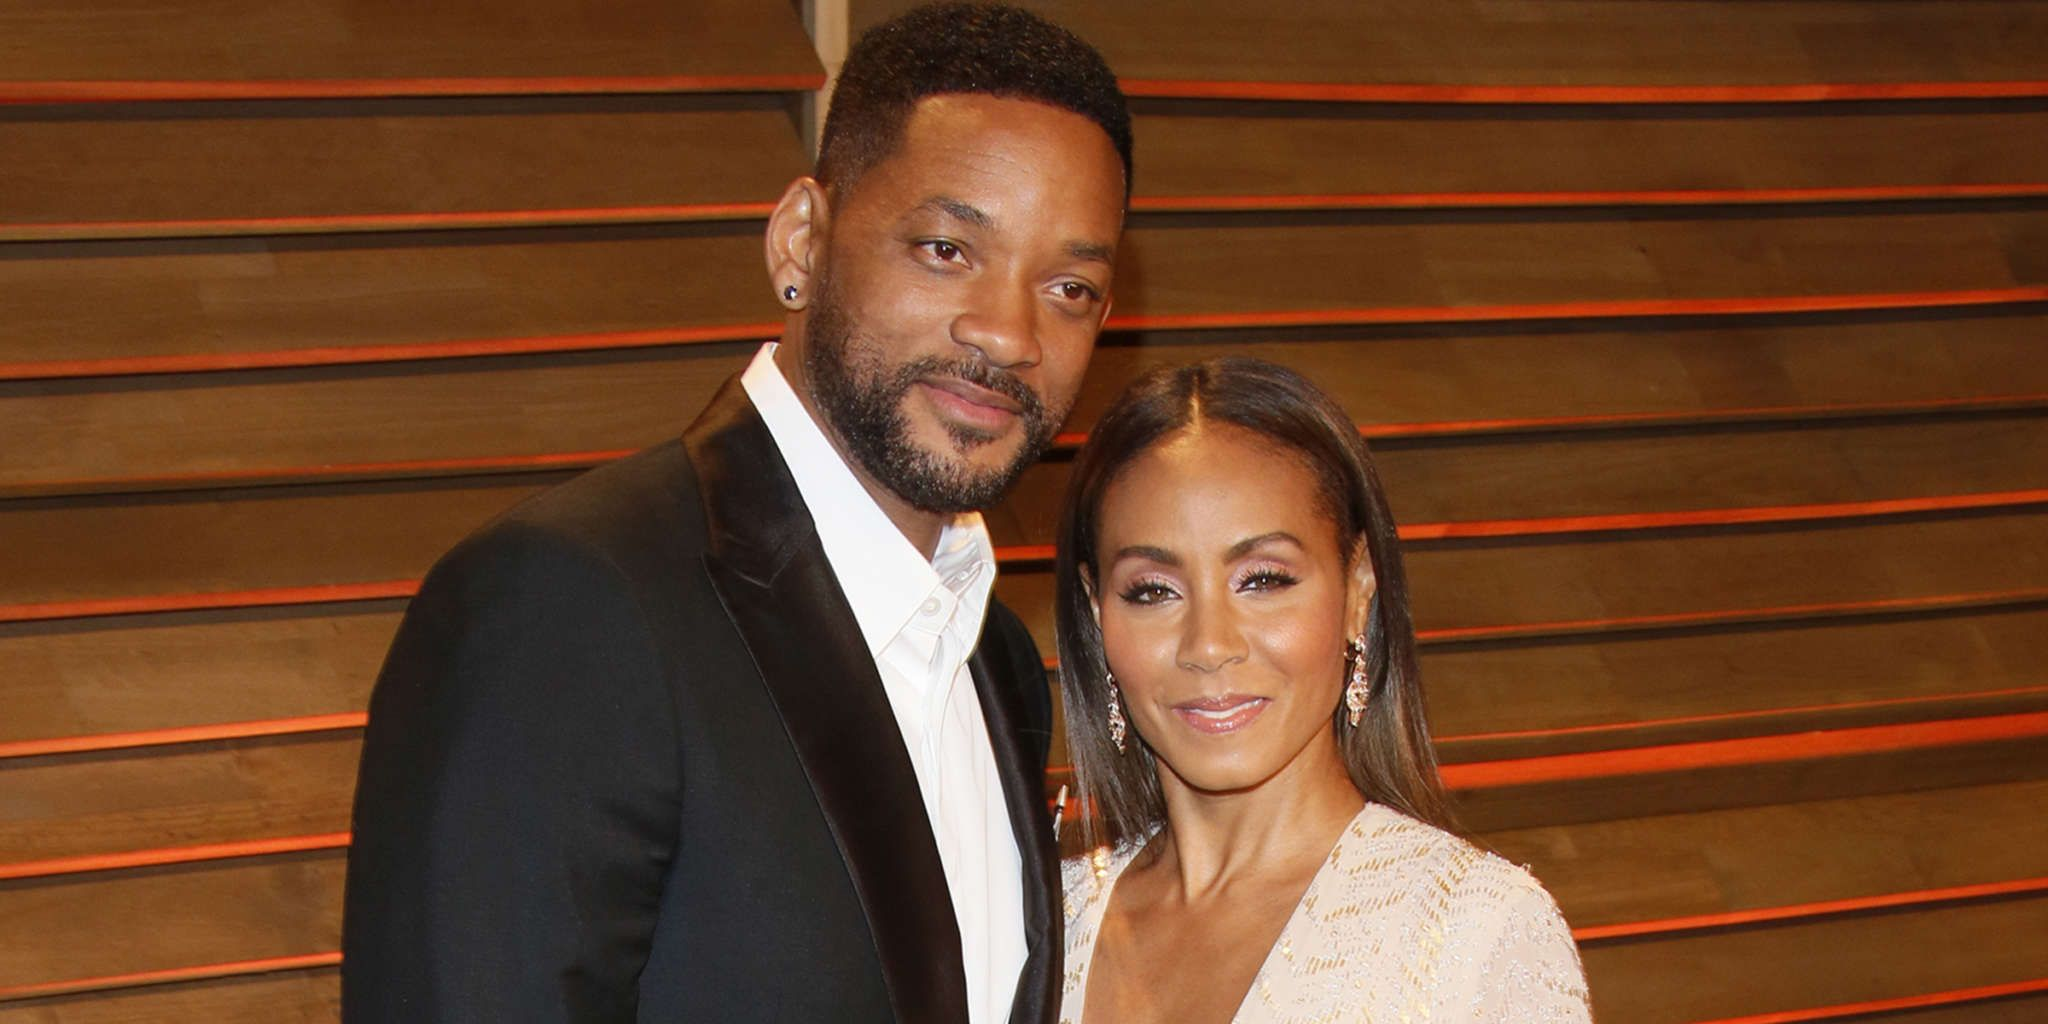 Will Smith And Jada Pinkett Reveal That They 'Broke Up' And She Started Dating August Alsina -- Will Denies Granting Permission #AugustAlsina, #JadaPinkettSmith, #WillSmith celebrityinsider.org #Entertainment #celebrityinsider #celebritynews #celebrities #celebrity